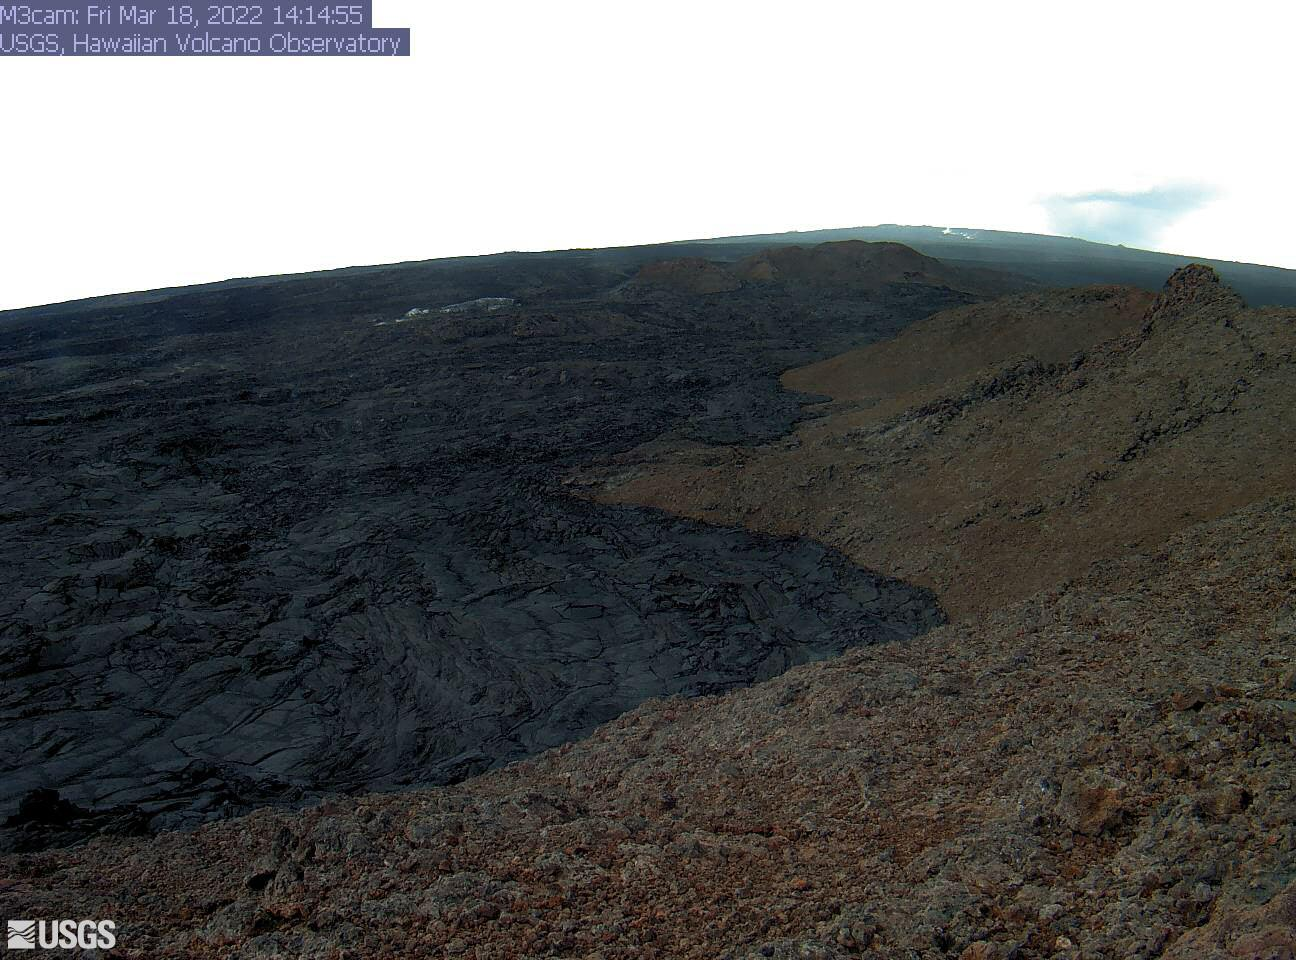 Upper Part of Mauna Loa Southwest Rift Zone [M3cam] preview image